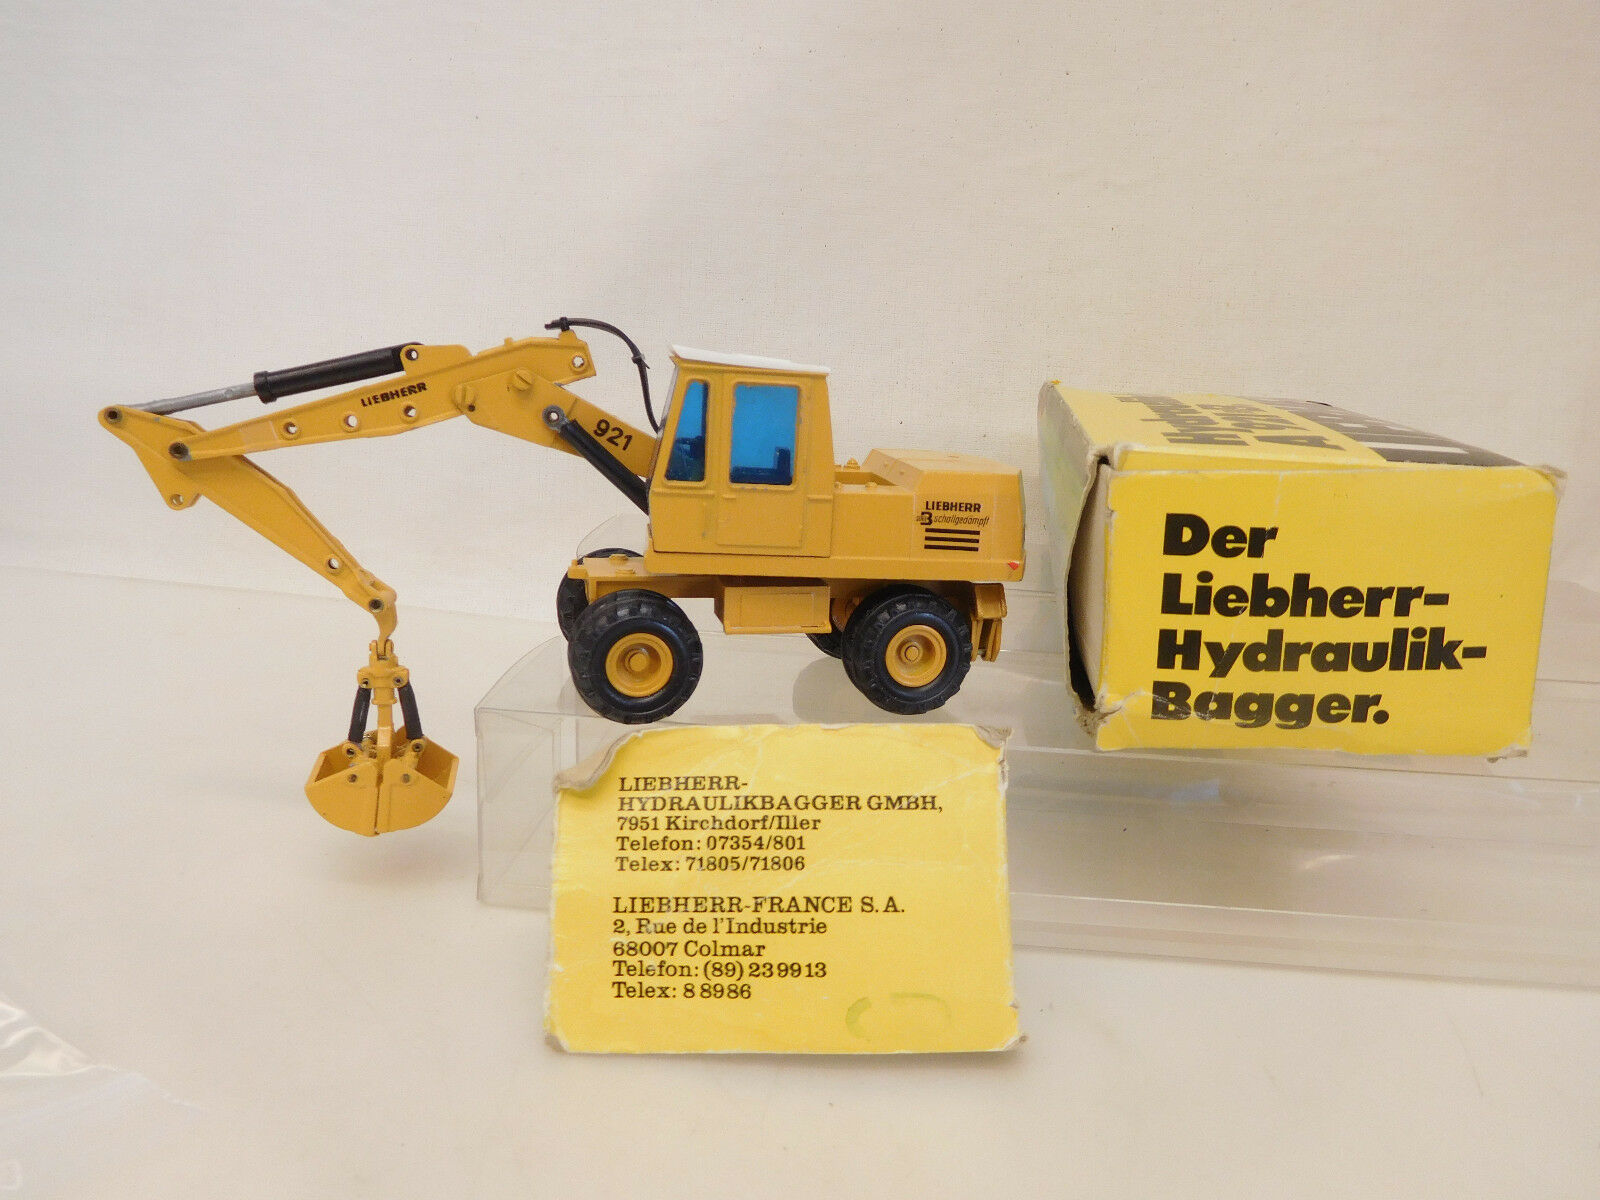 Esf-05520 GESCHA Liebherr 921 excavator, with slight wear